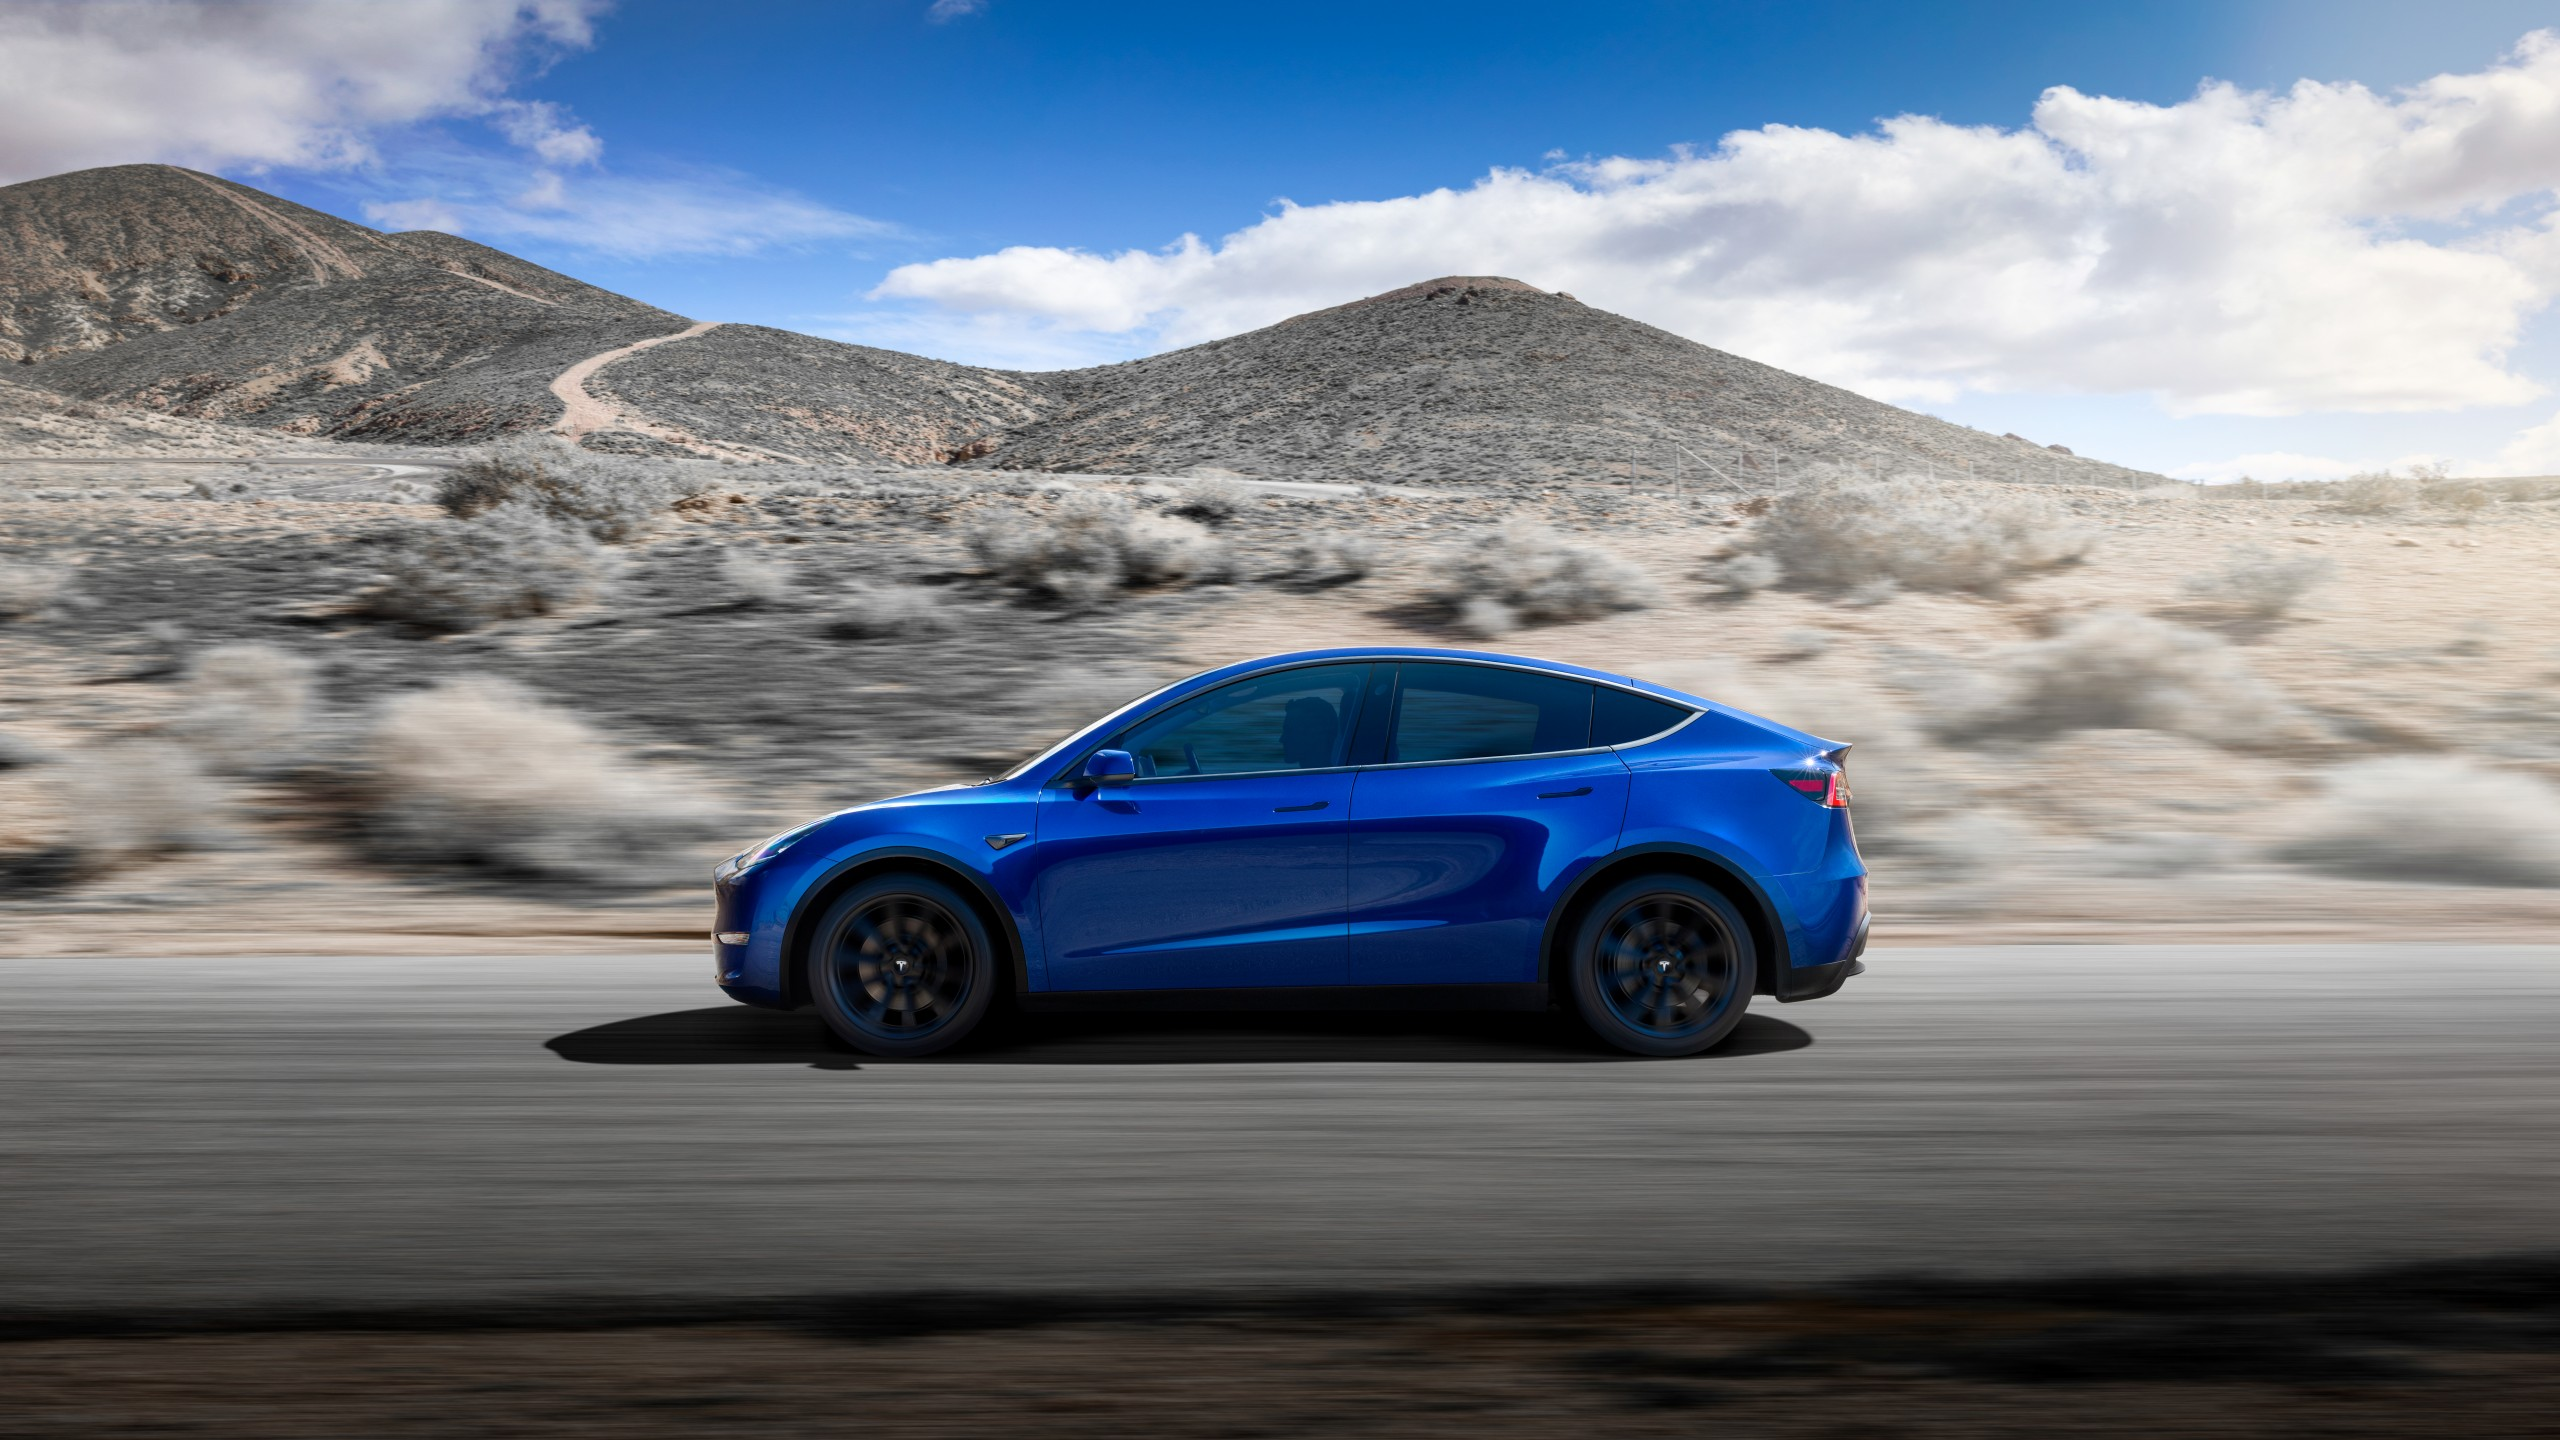 Wallpaper Tesla Model Y 2020 Cars Electric Cars Suv 8k